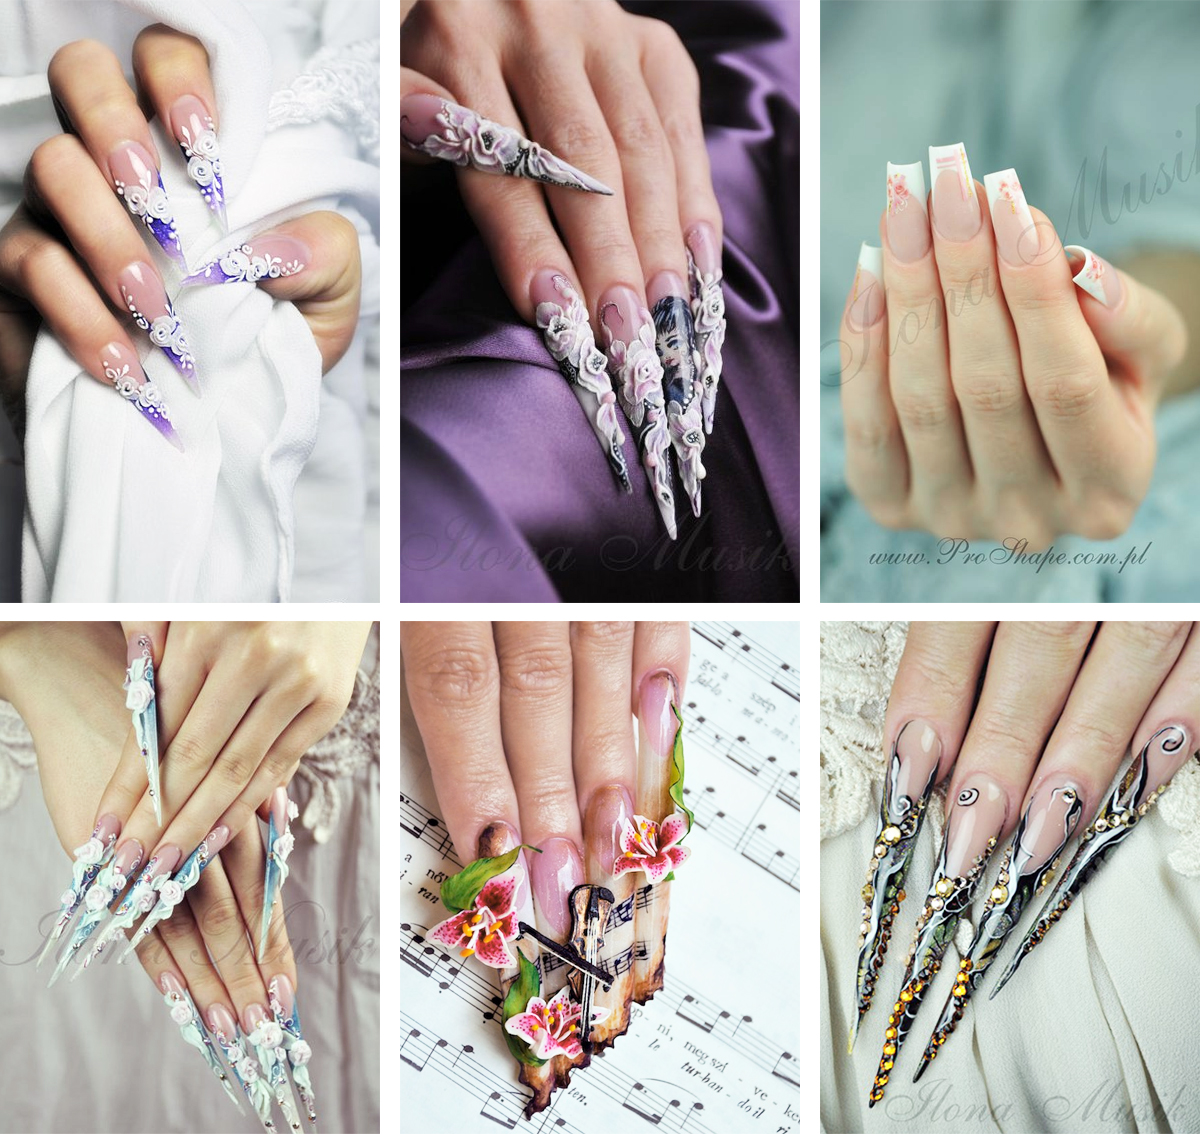 Amazing nails by the nail artist Ilona Musik